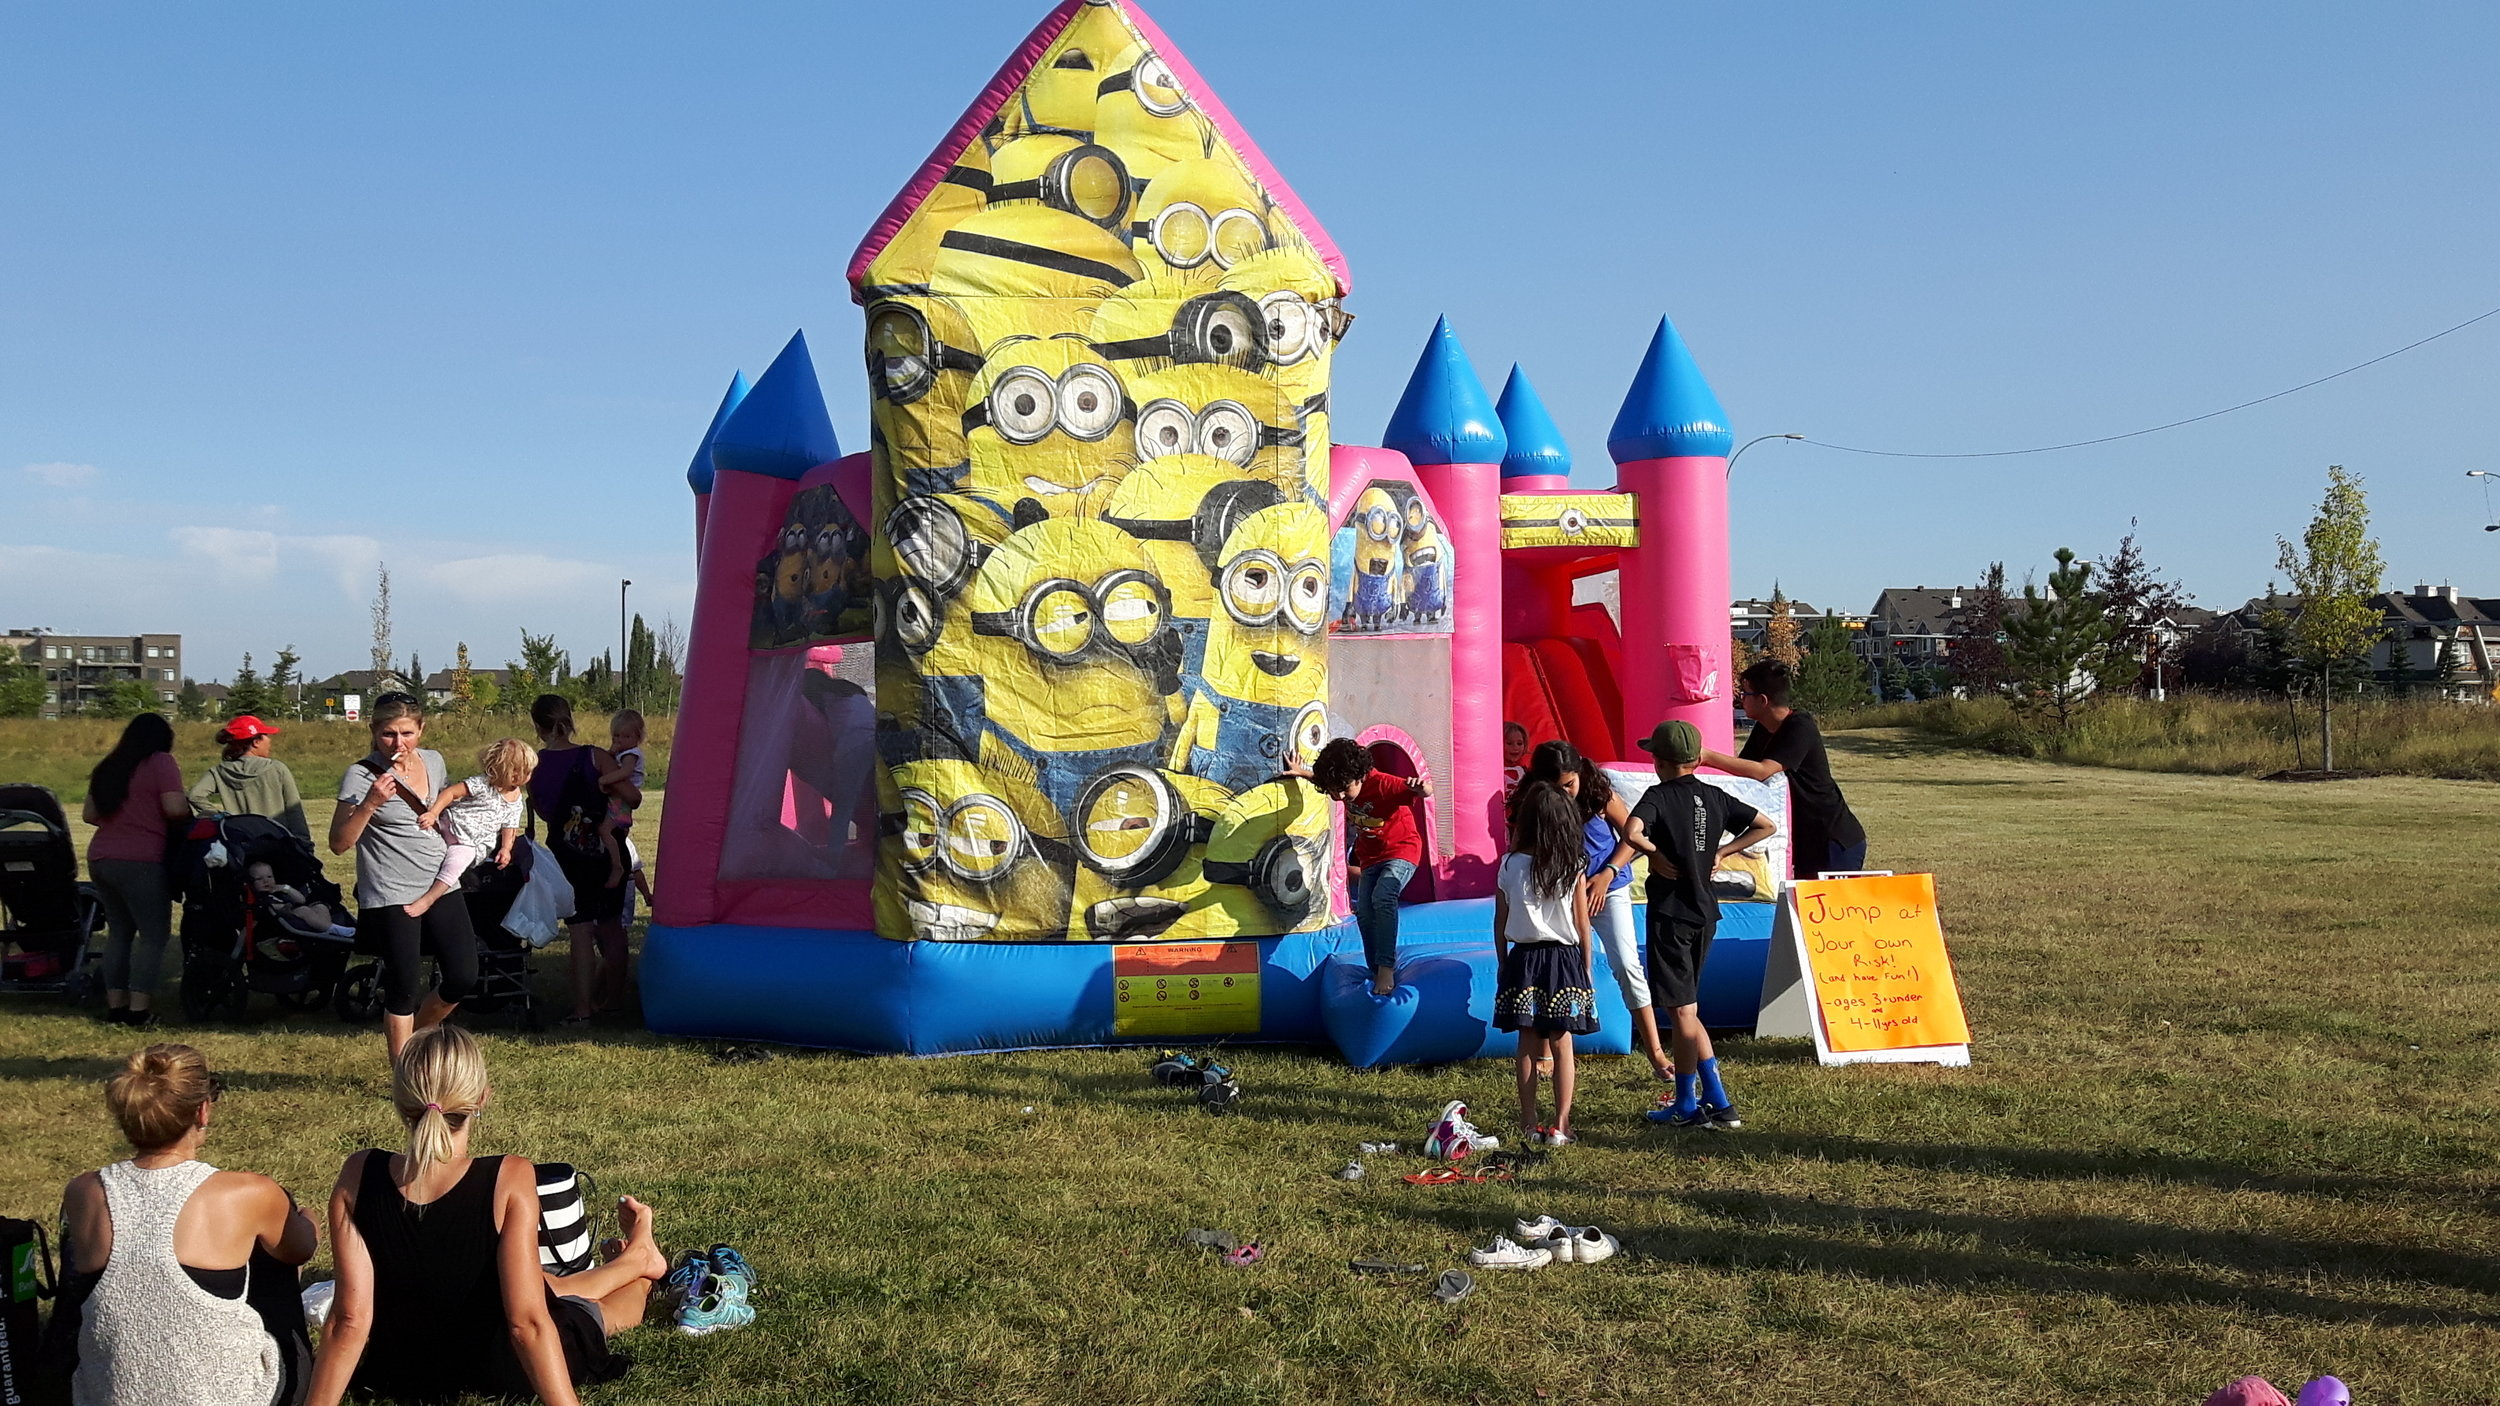 Last week we have several hundred little jumpers on our bouncy castle!